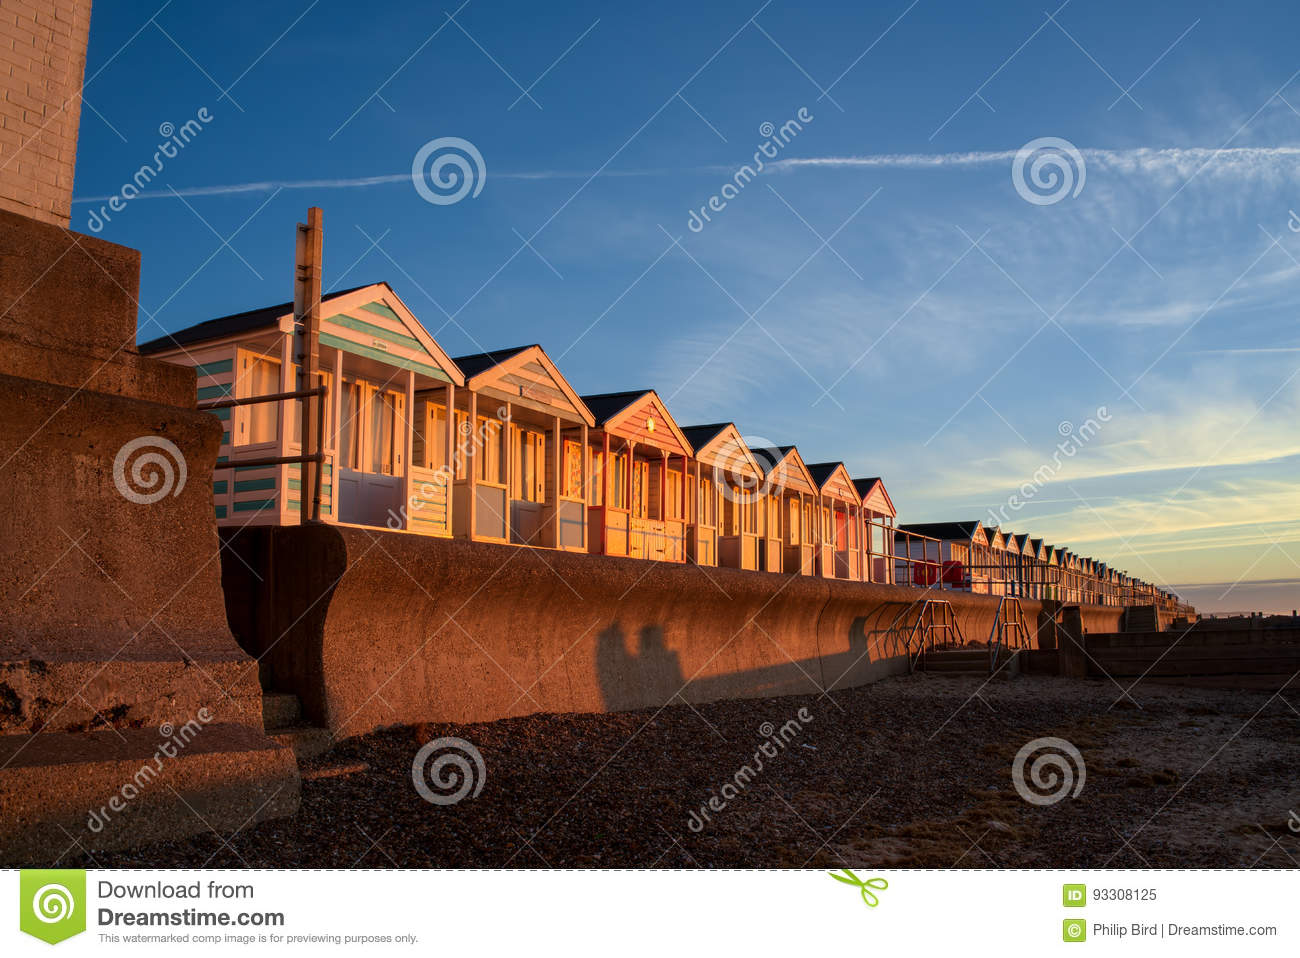 SOUTHWOLD, SUFFOLK/UK - MAY 24 : A Row of Brightly Coloured Beach Huts in Southwold Suffolk on May 24, 2017